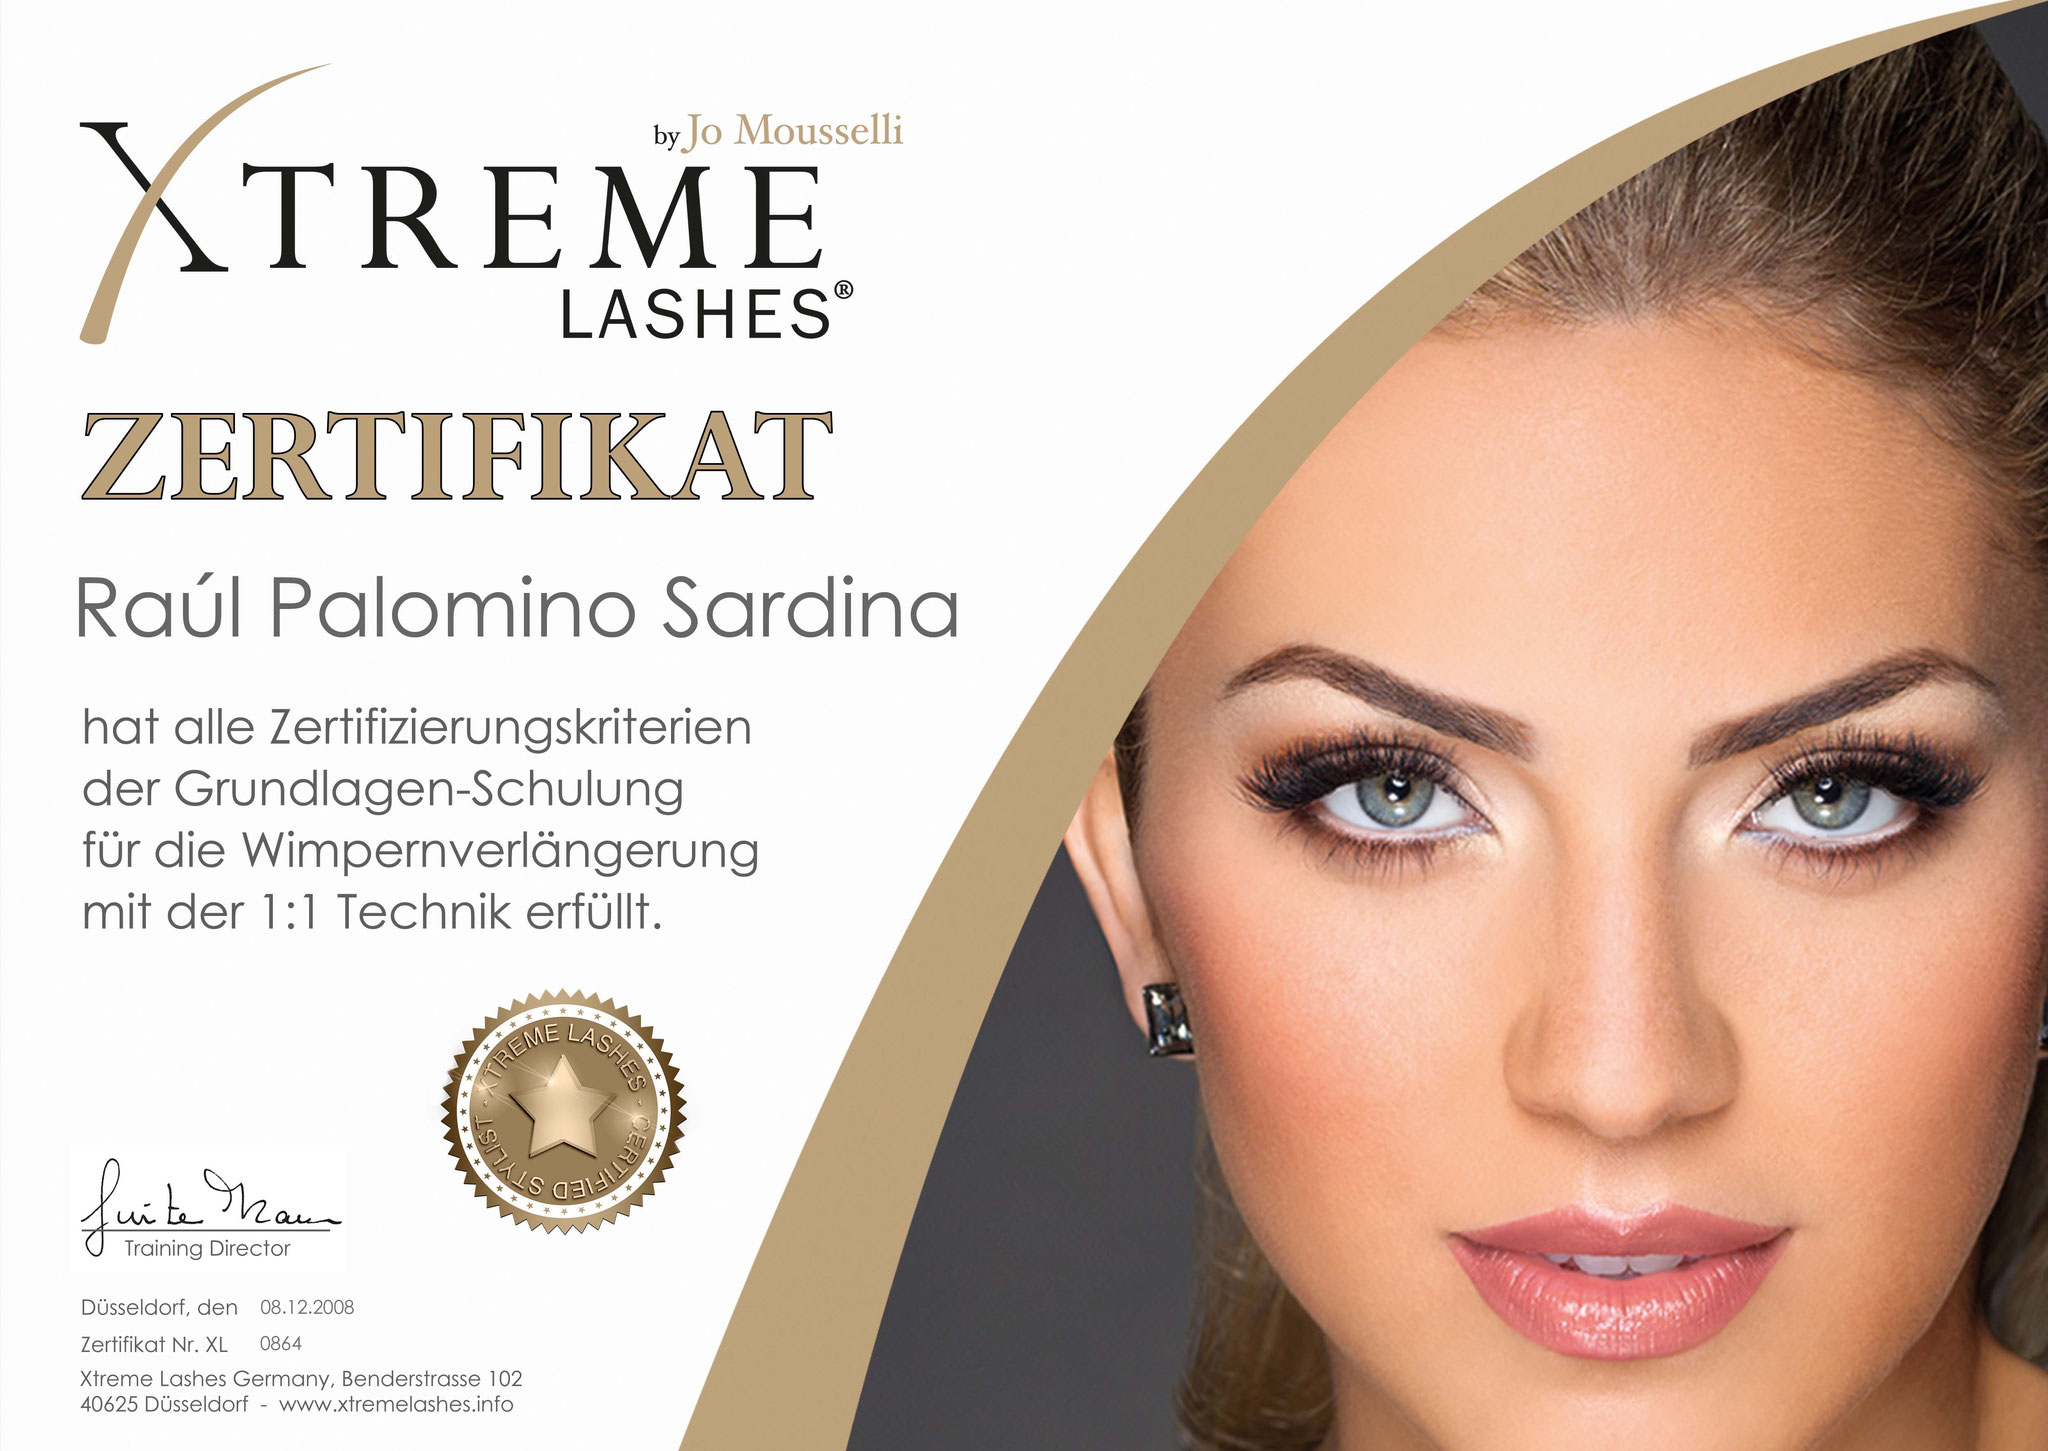 Xtreme Lashes® Zertifikat Basis-Schulung